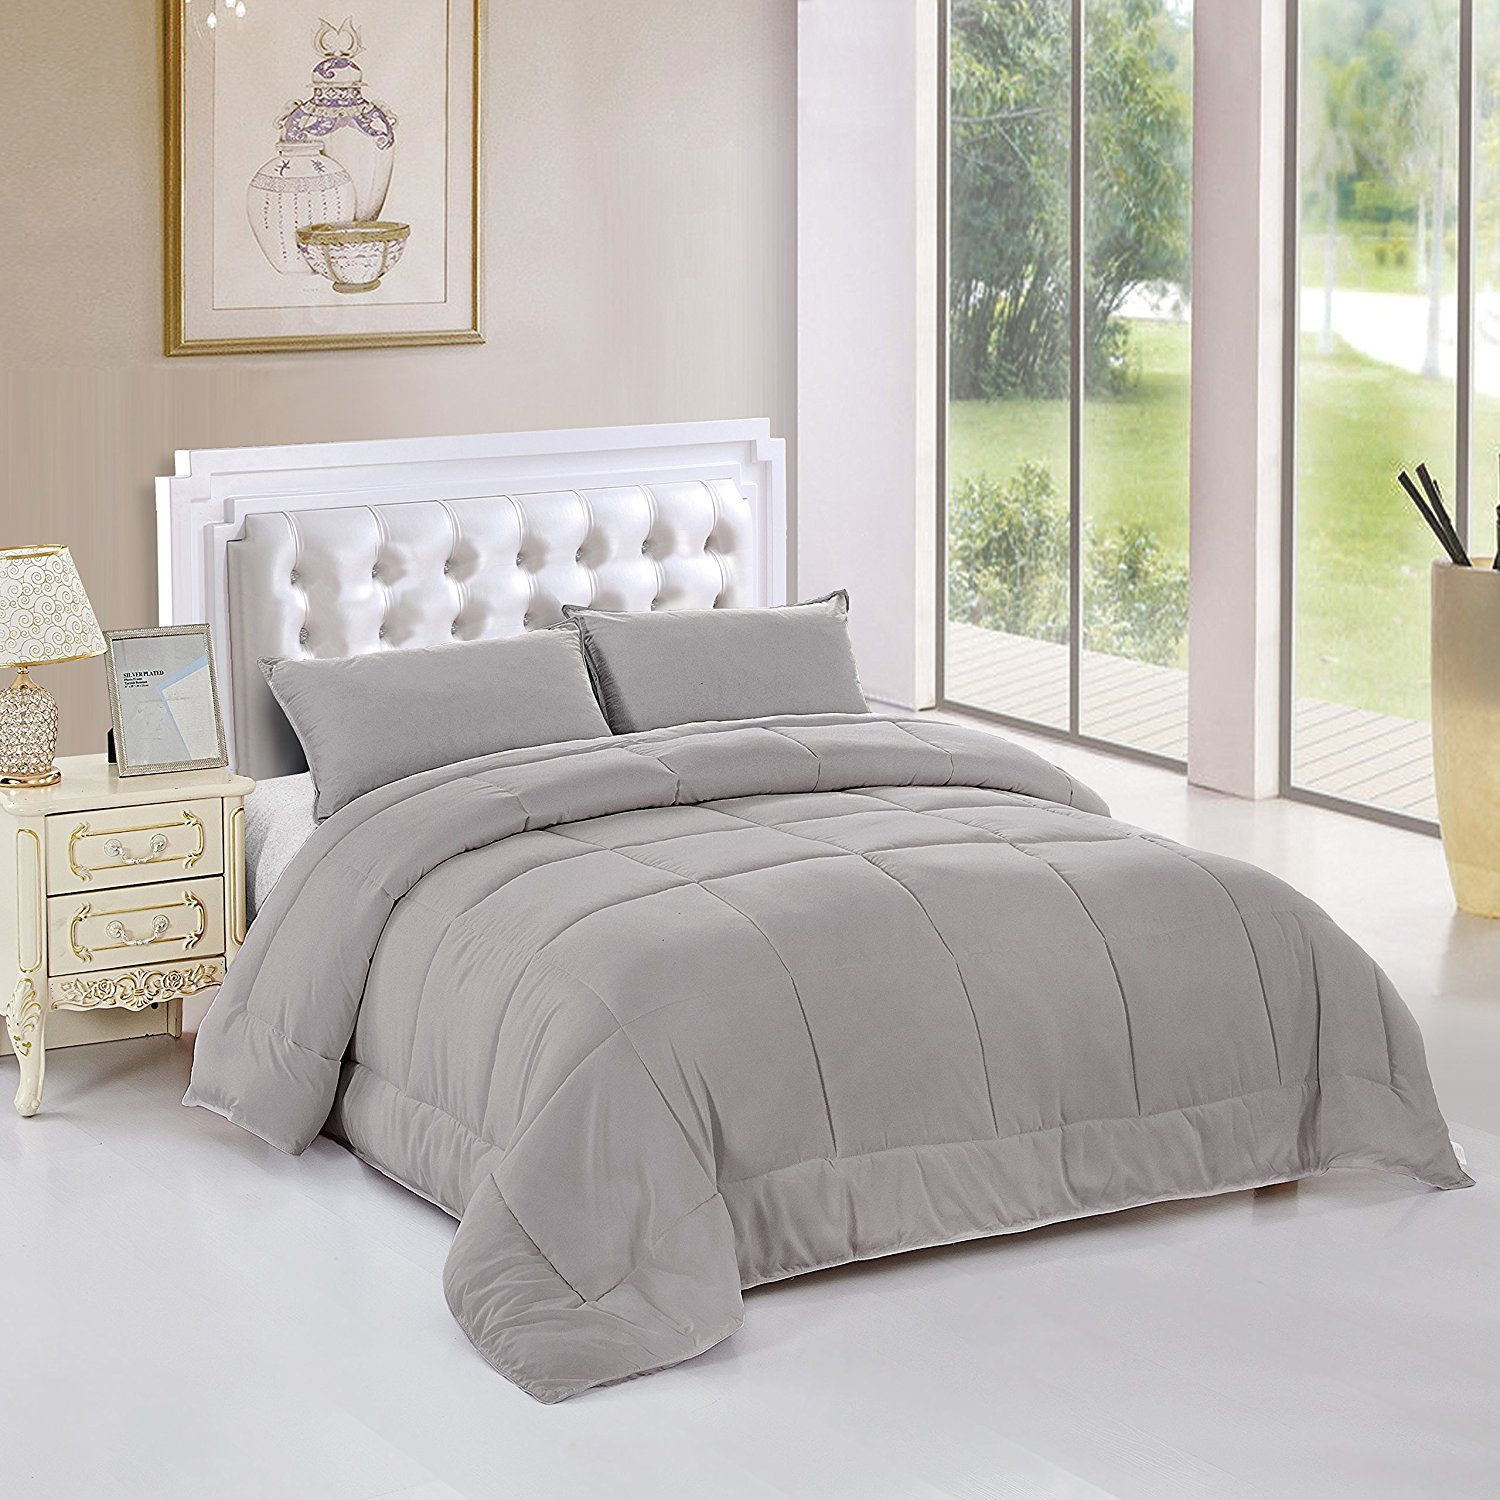 Unique Home All Season Goose Down Alternative Quilted Comforter Sets-Hypoallergenic-Plush Fiberfill Duvet Insert All Sizes (Grey, Twin)